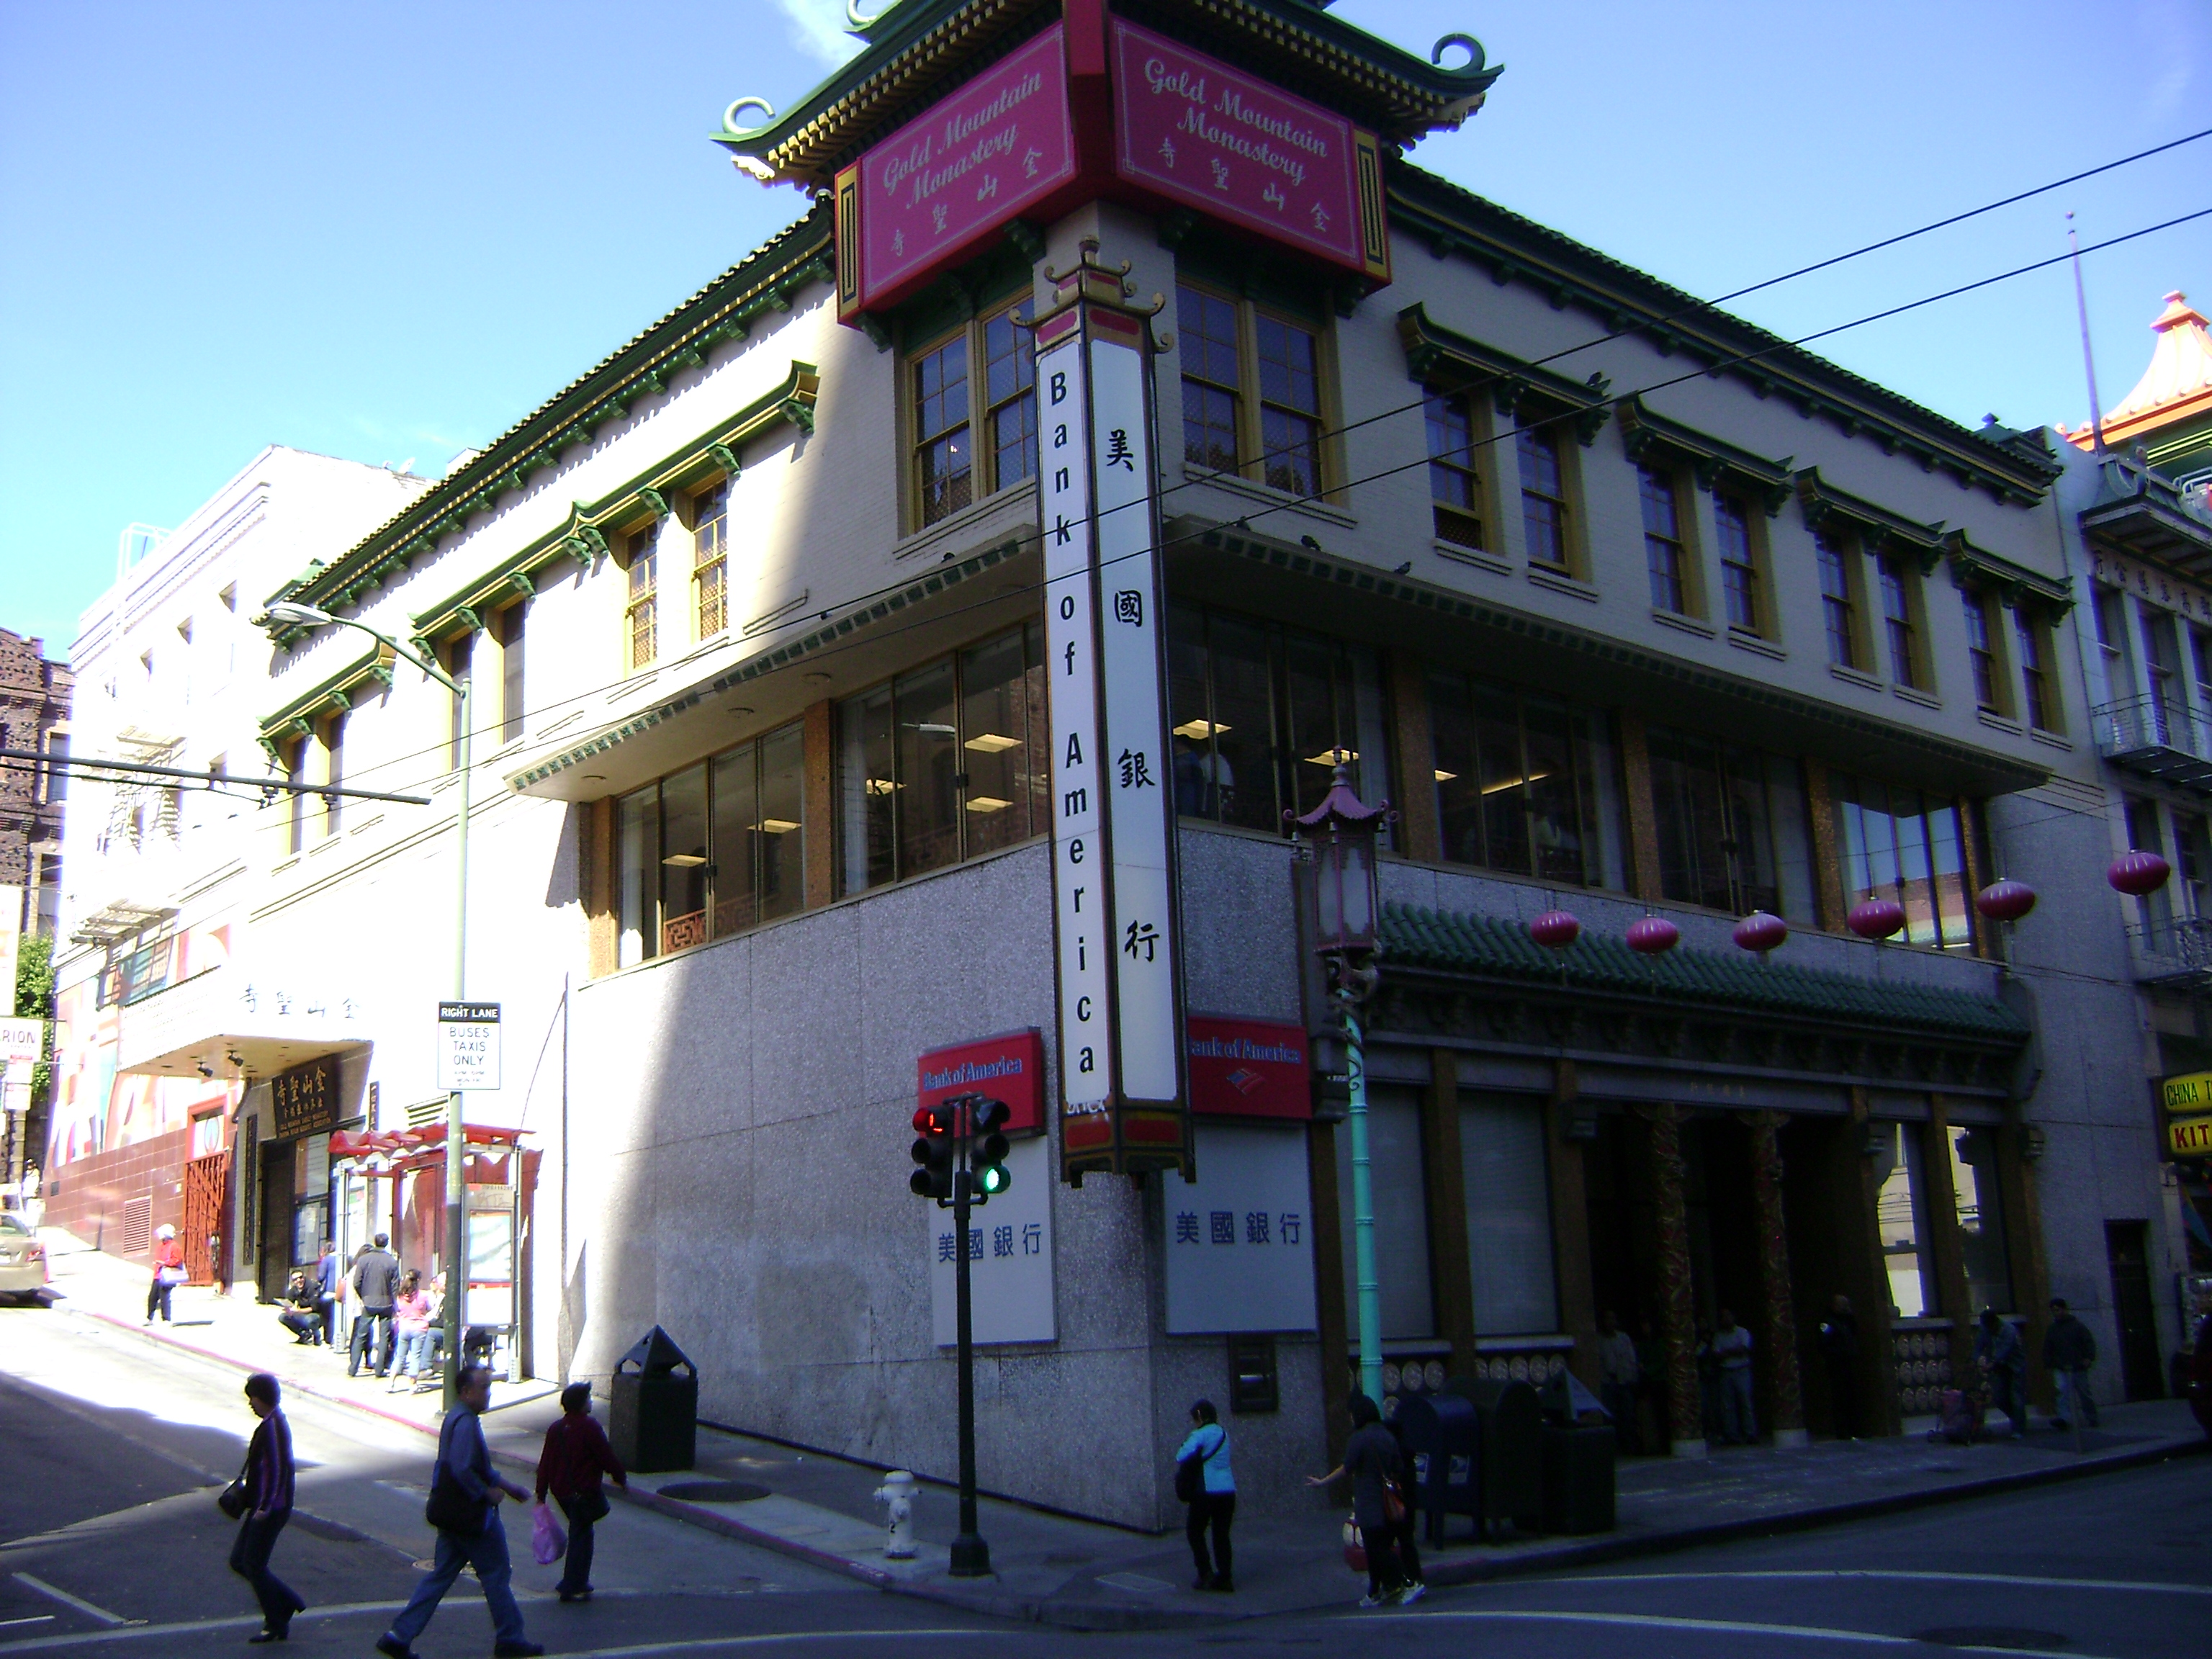 File:Bank of America, Chinatown San Francisco.JPG - Wikimedia Commons